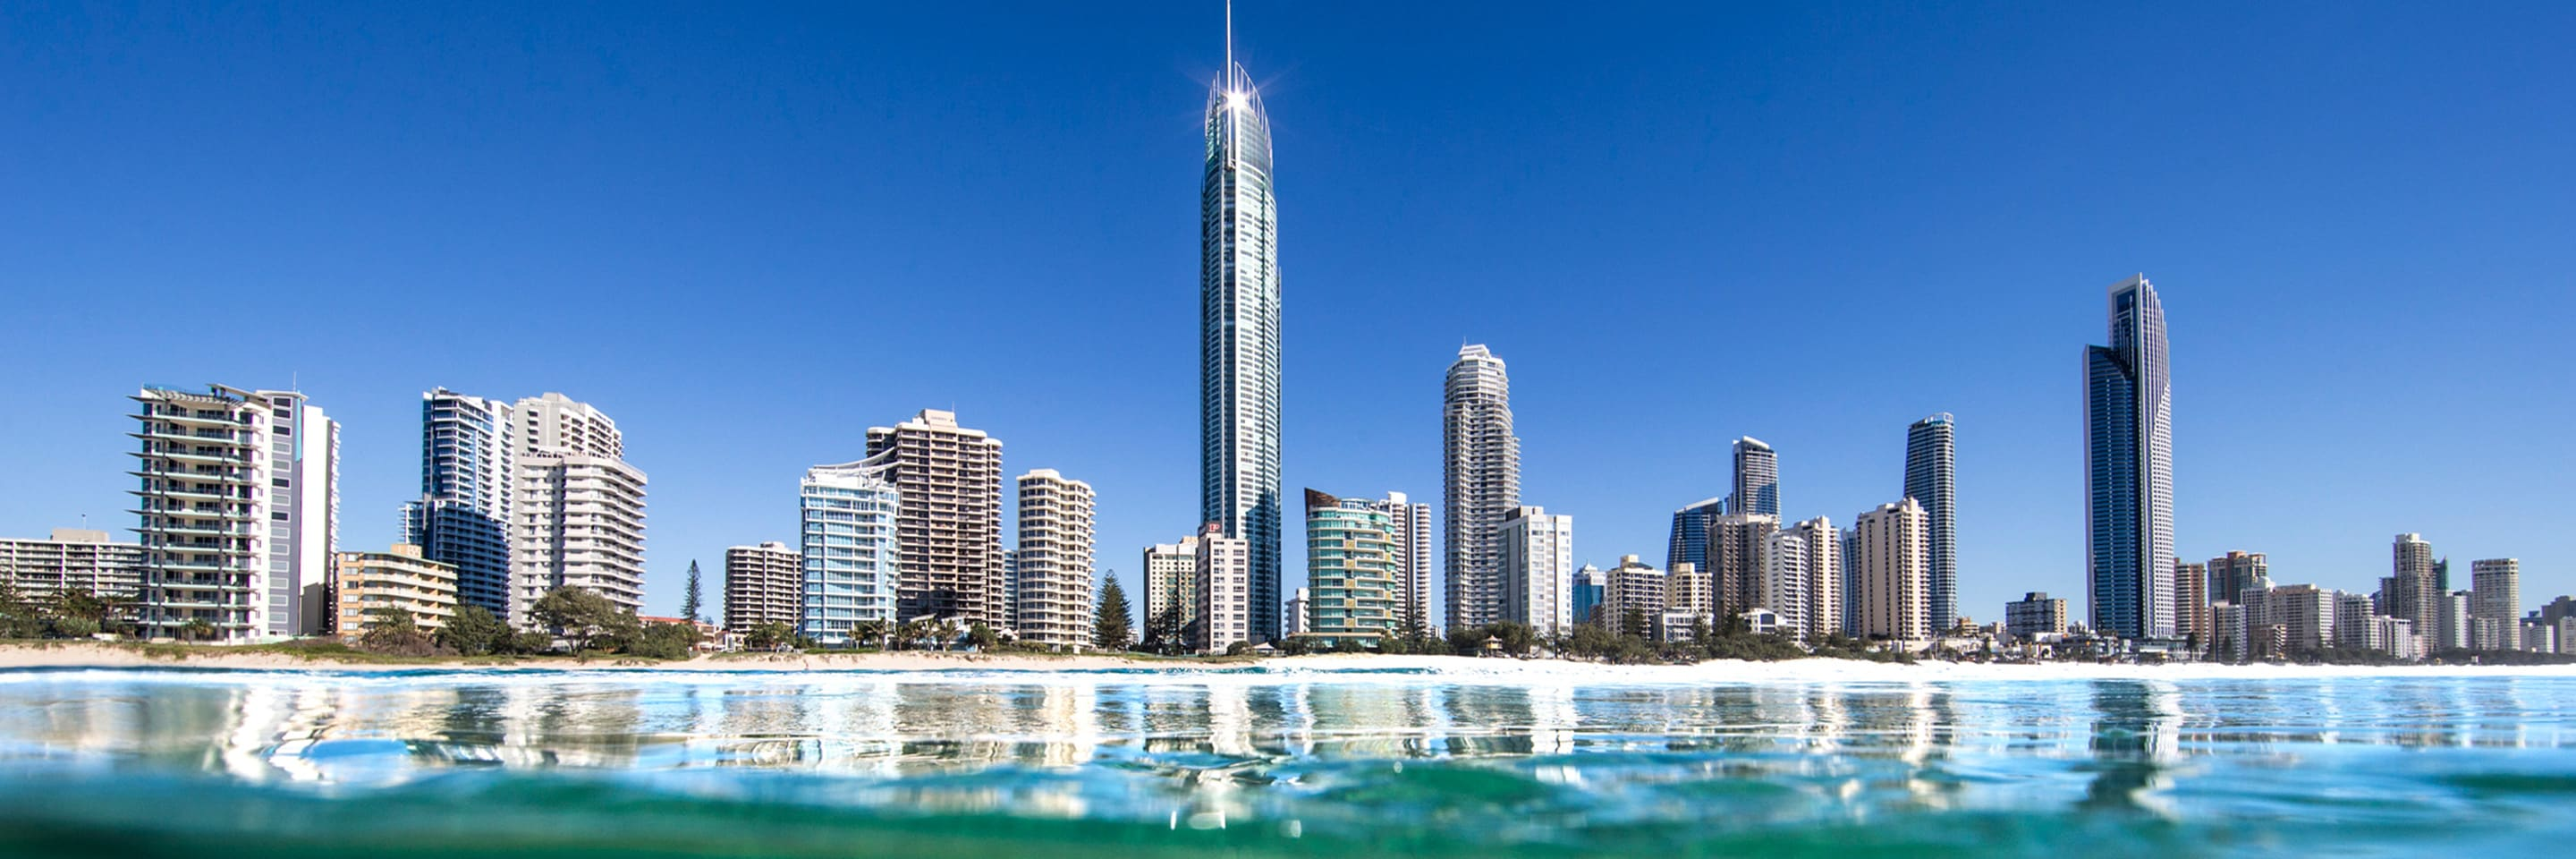 Hotels in Surfers Paradise